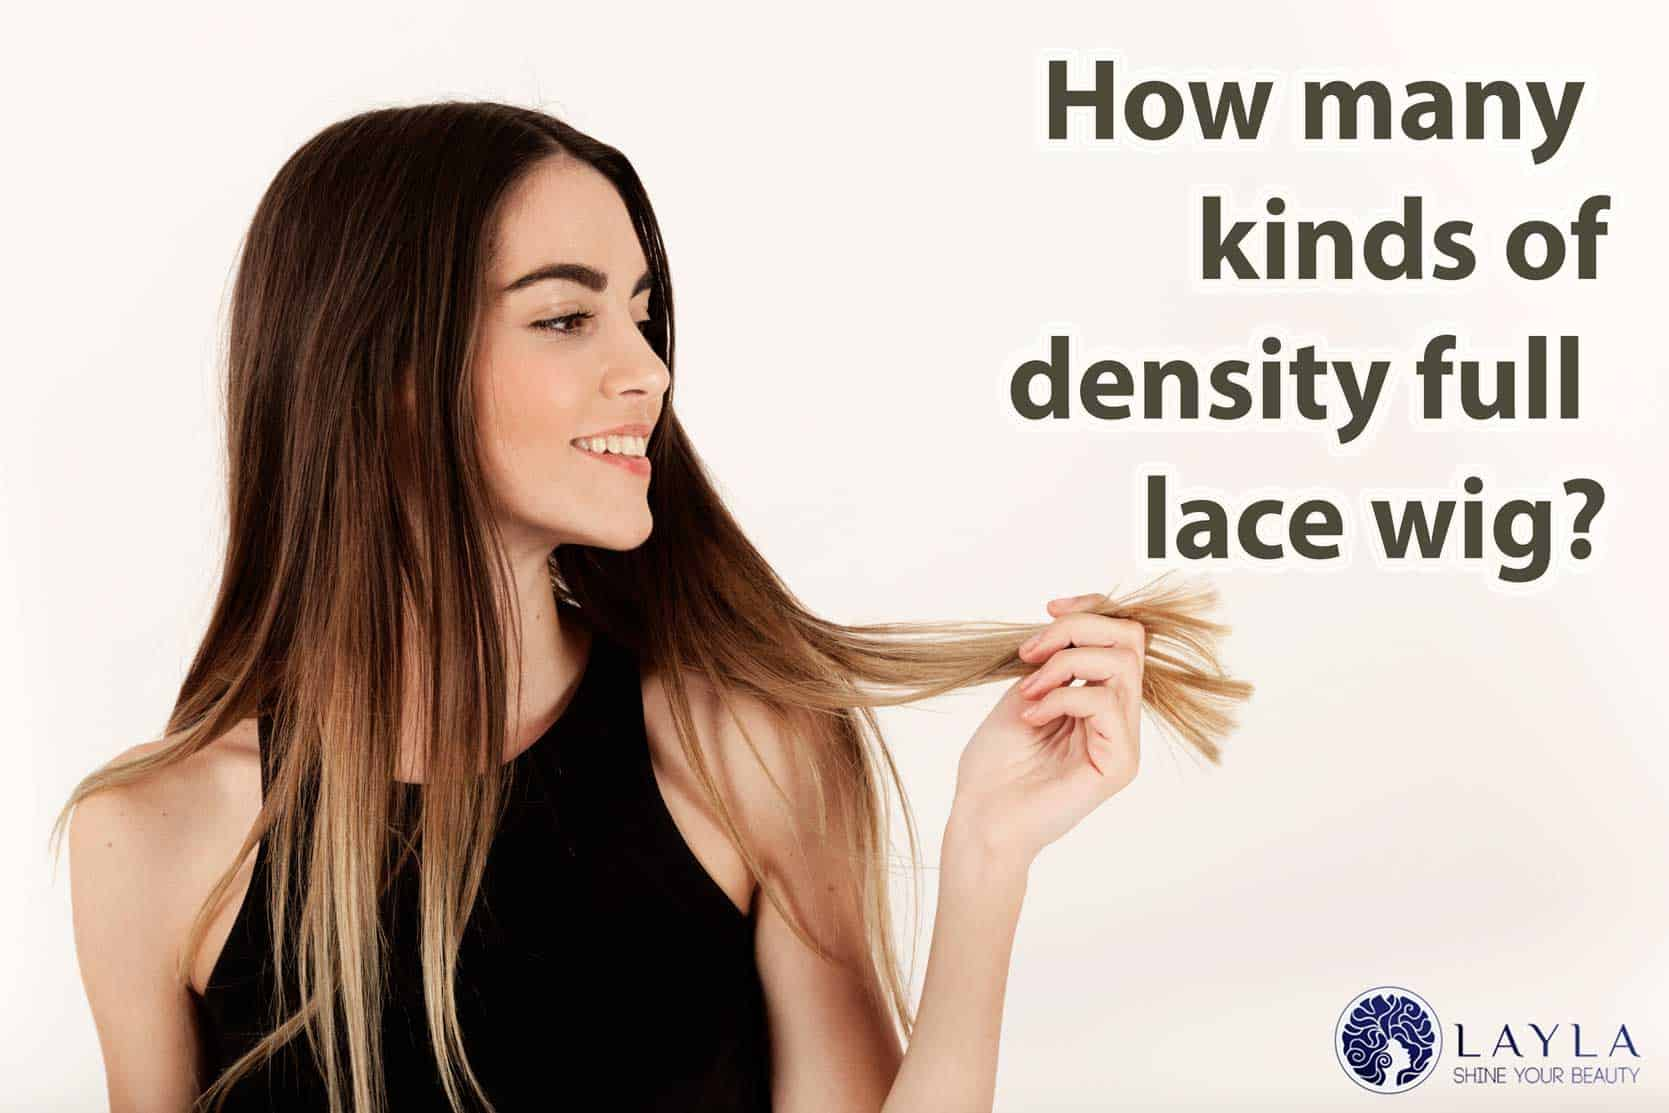 How many kinds of density full lace wig?